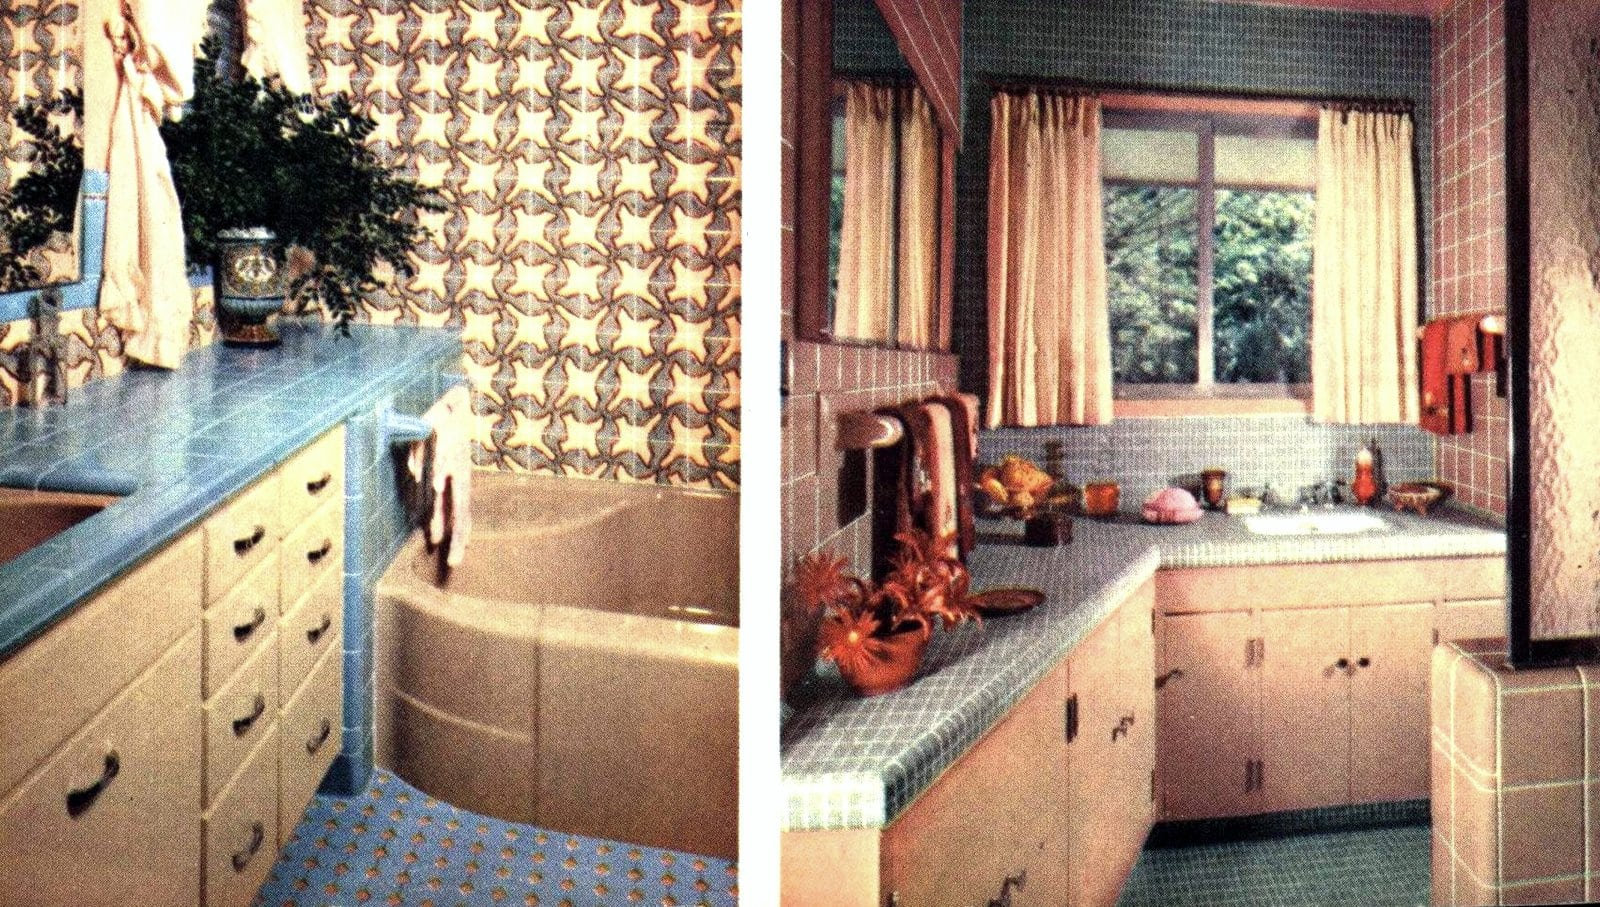 Two tiled bathroom designs from the fifties